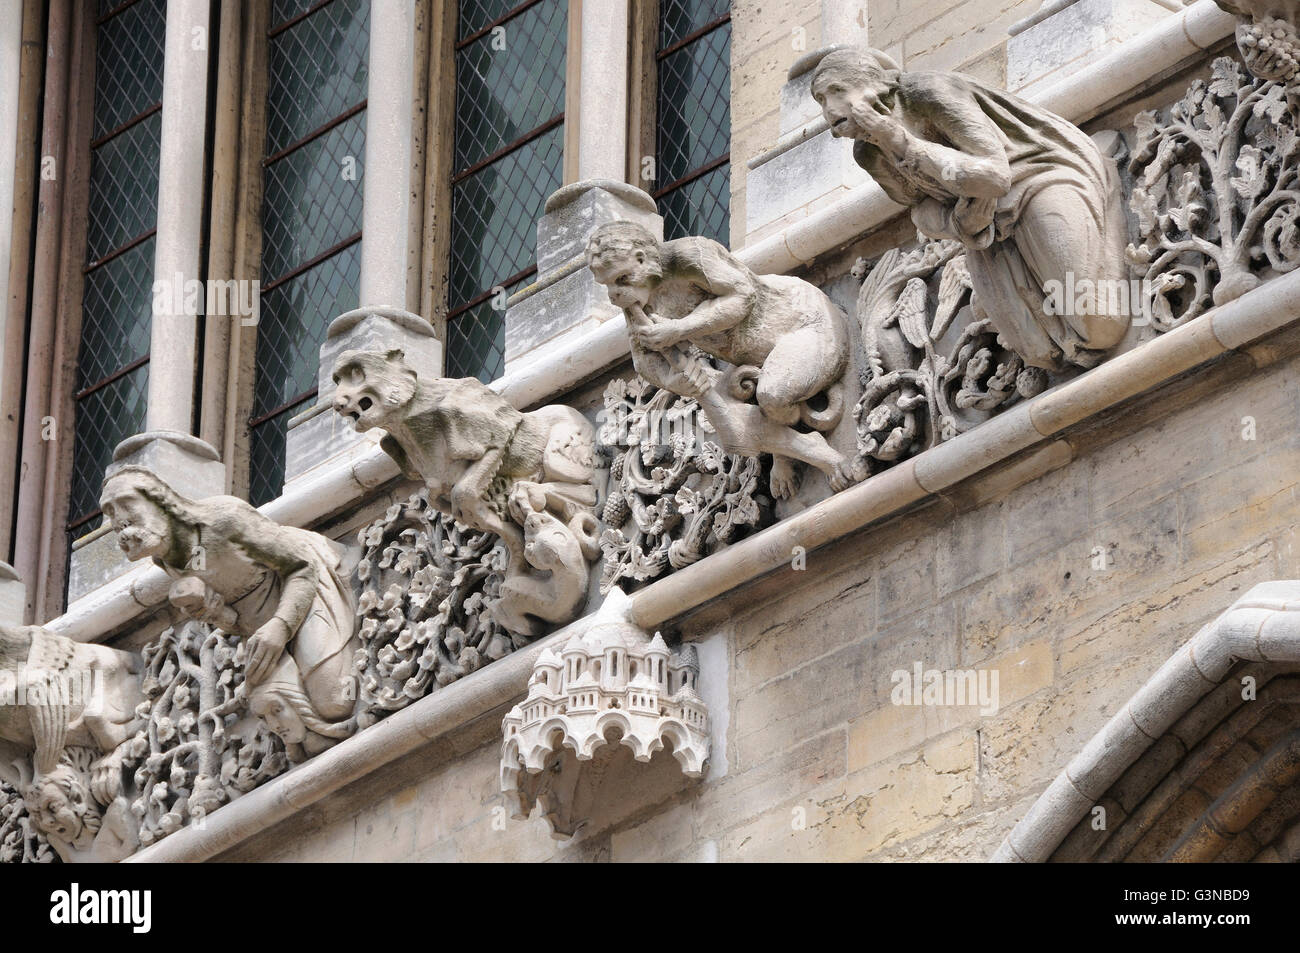 Gargoyles on facade of Notre Dame cathedral, Dijon, Côte d'Or departement, Burgundy, France, Europe Stock Photo